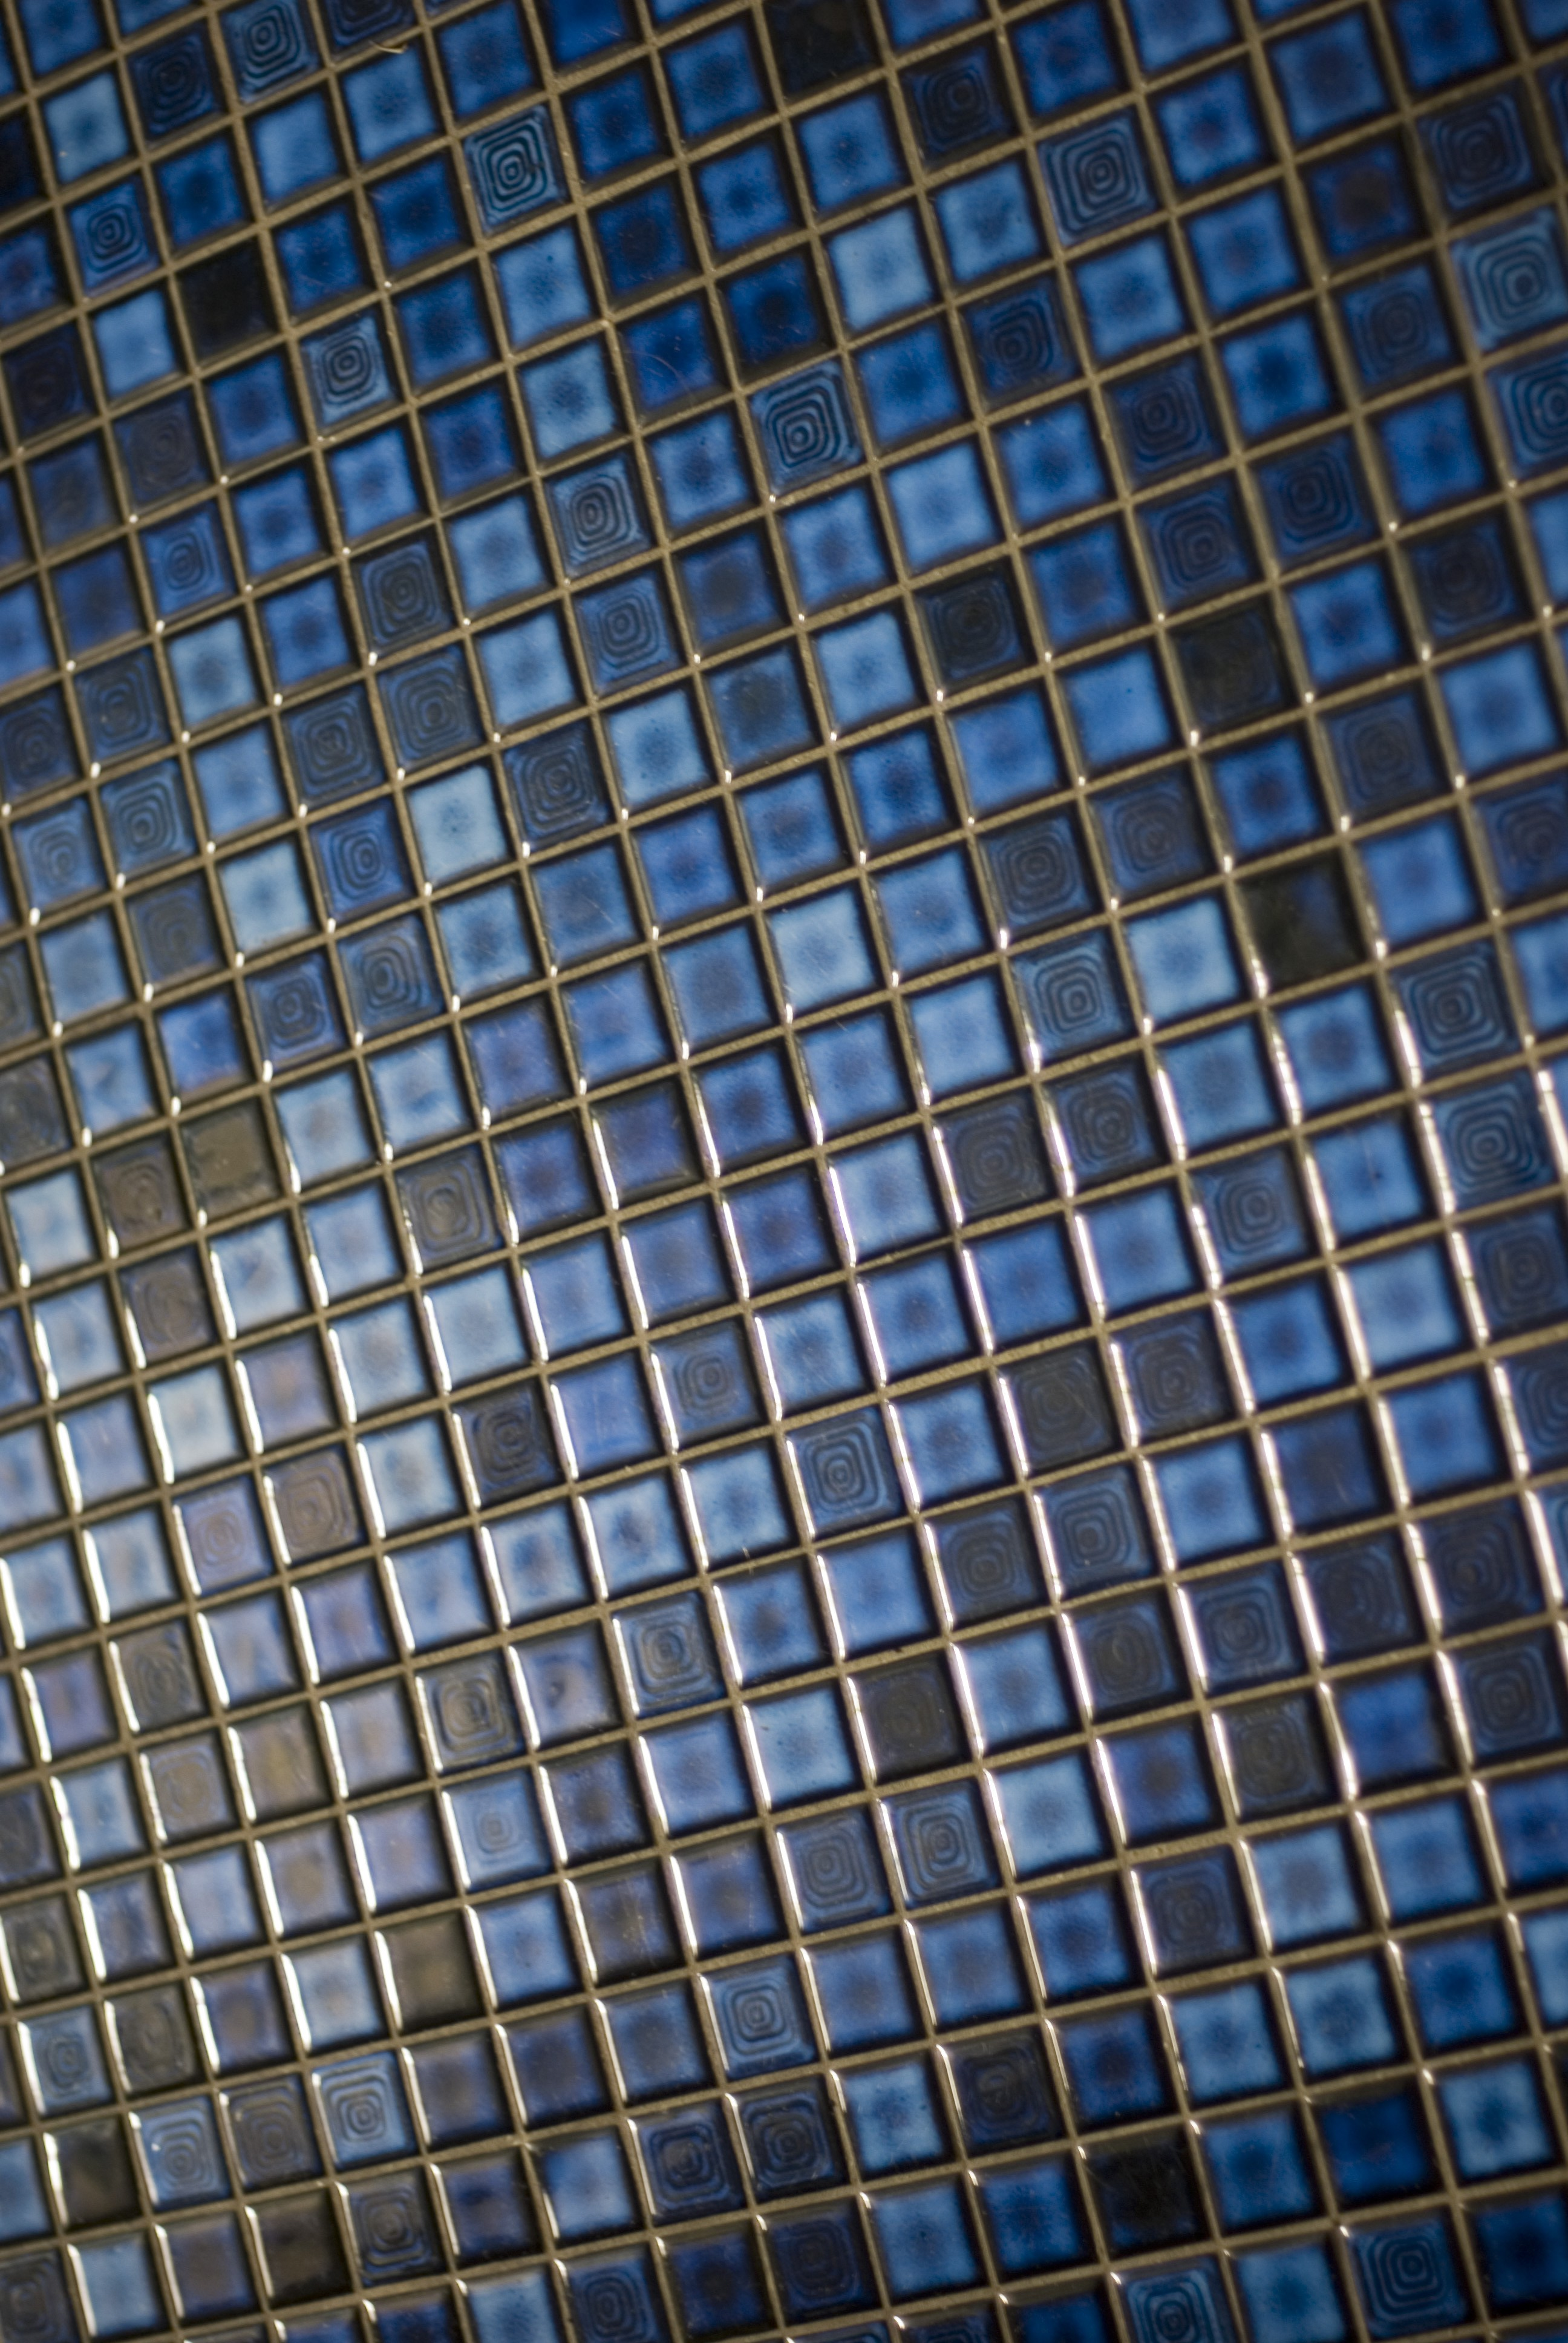 moasic tile floor | Free backgrounds and textures | Cr103.com